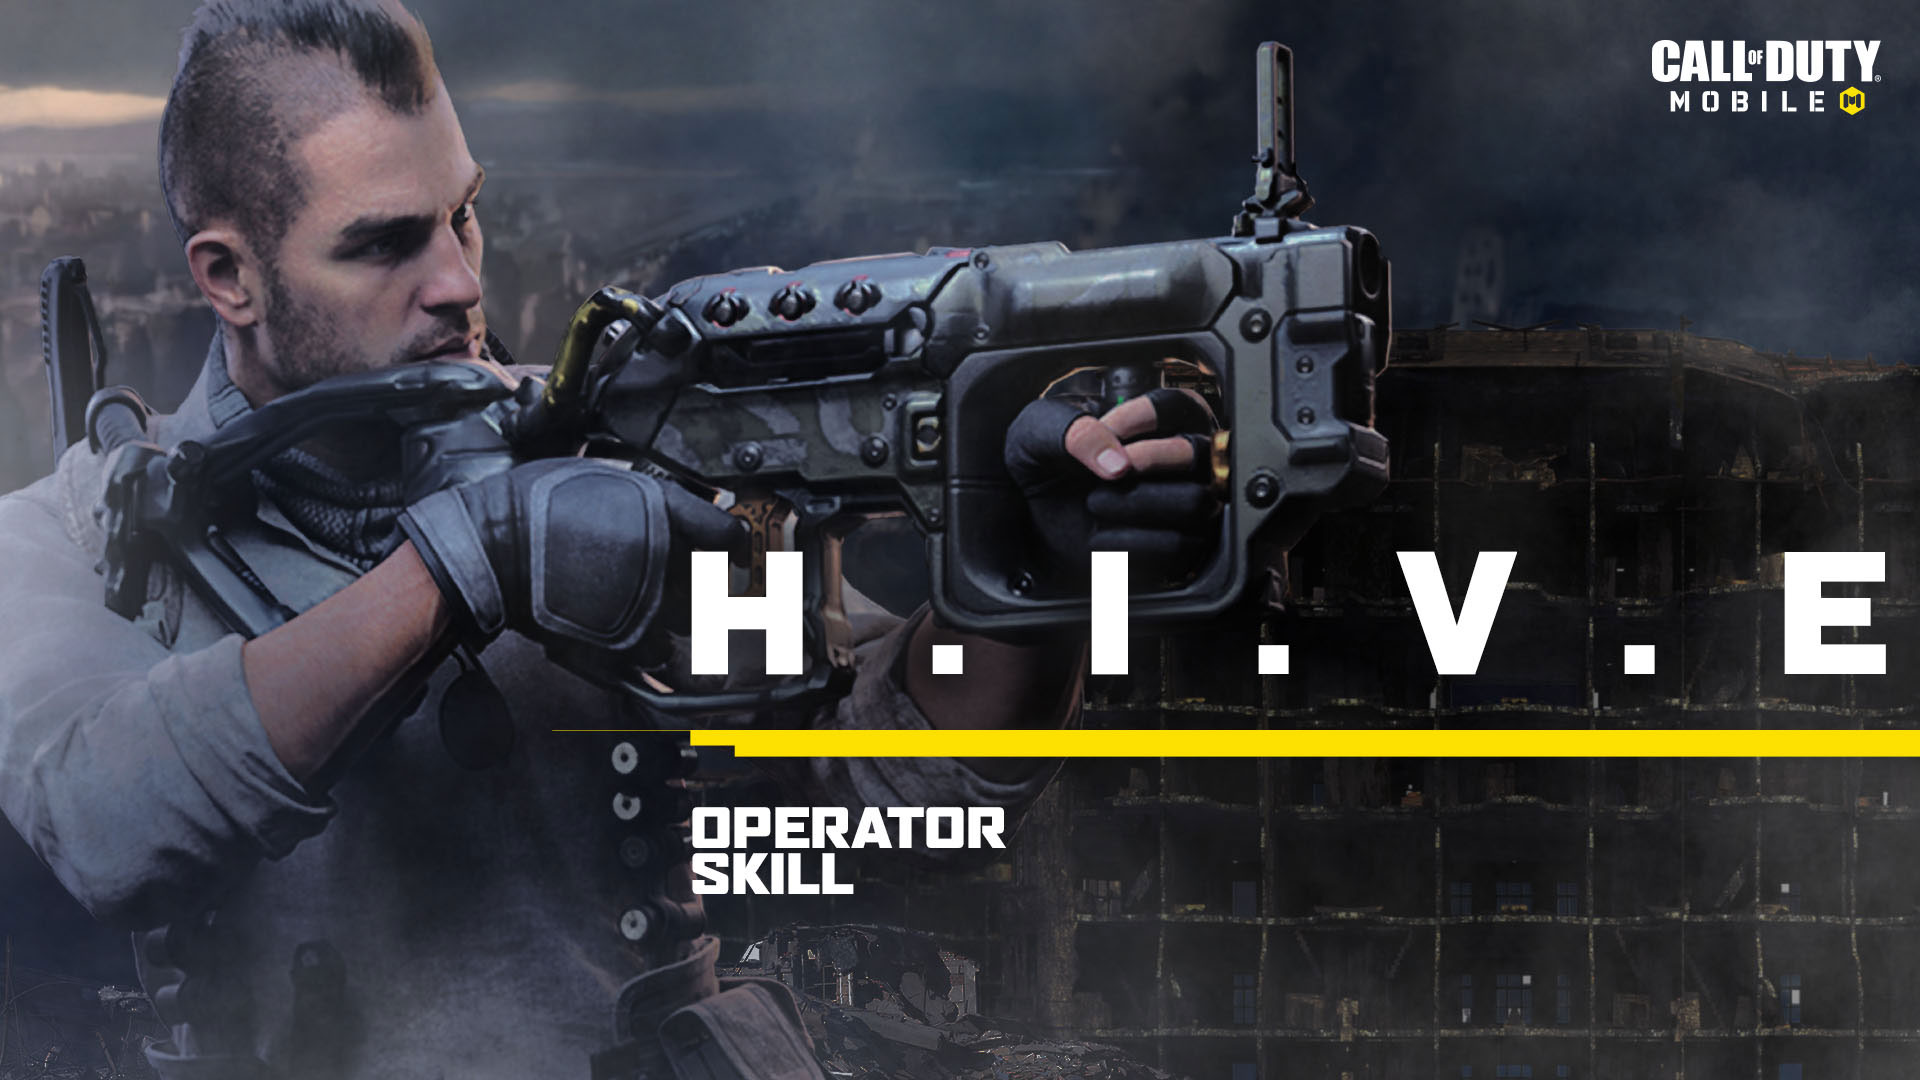 HIVE - Call of Duty Mobile